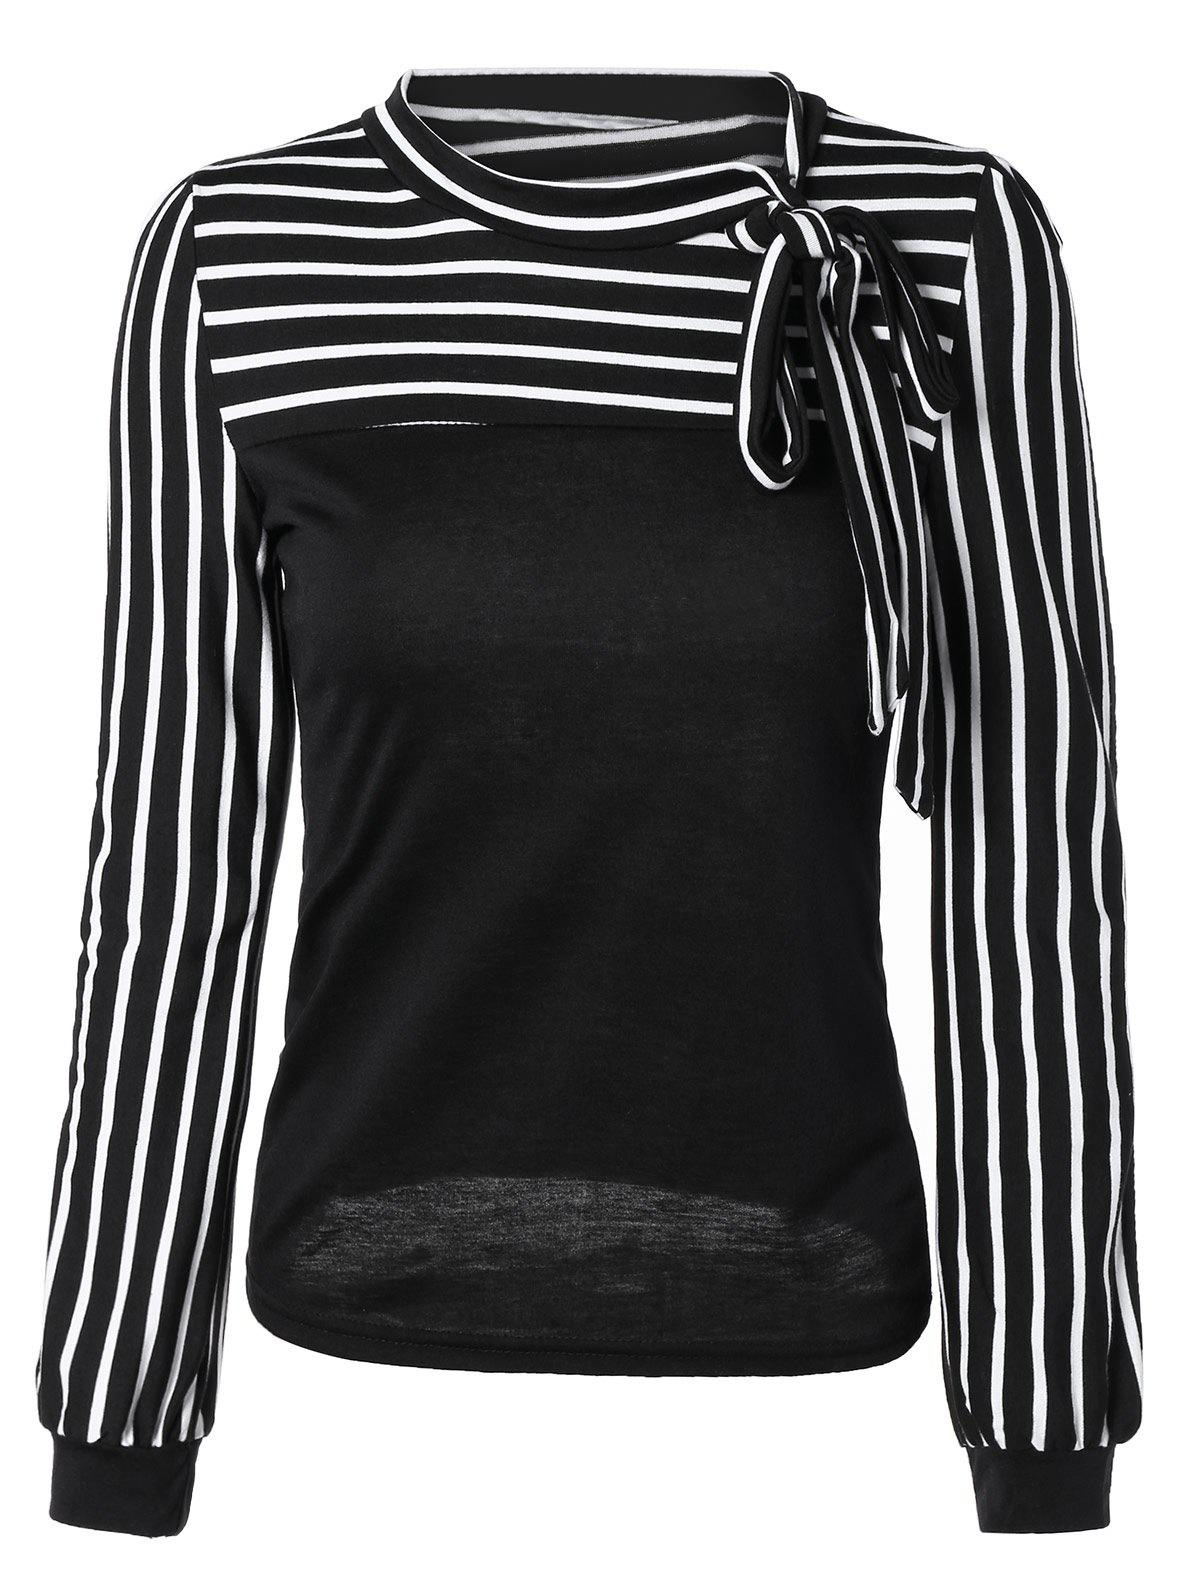 Simple Long Sleeve Bowknot Top For Women